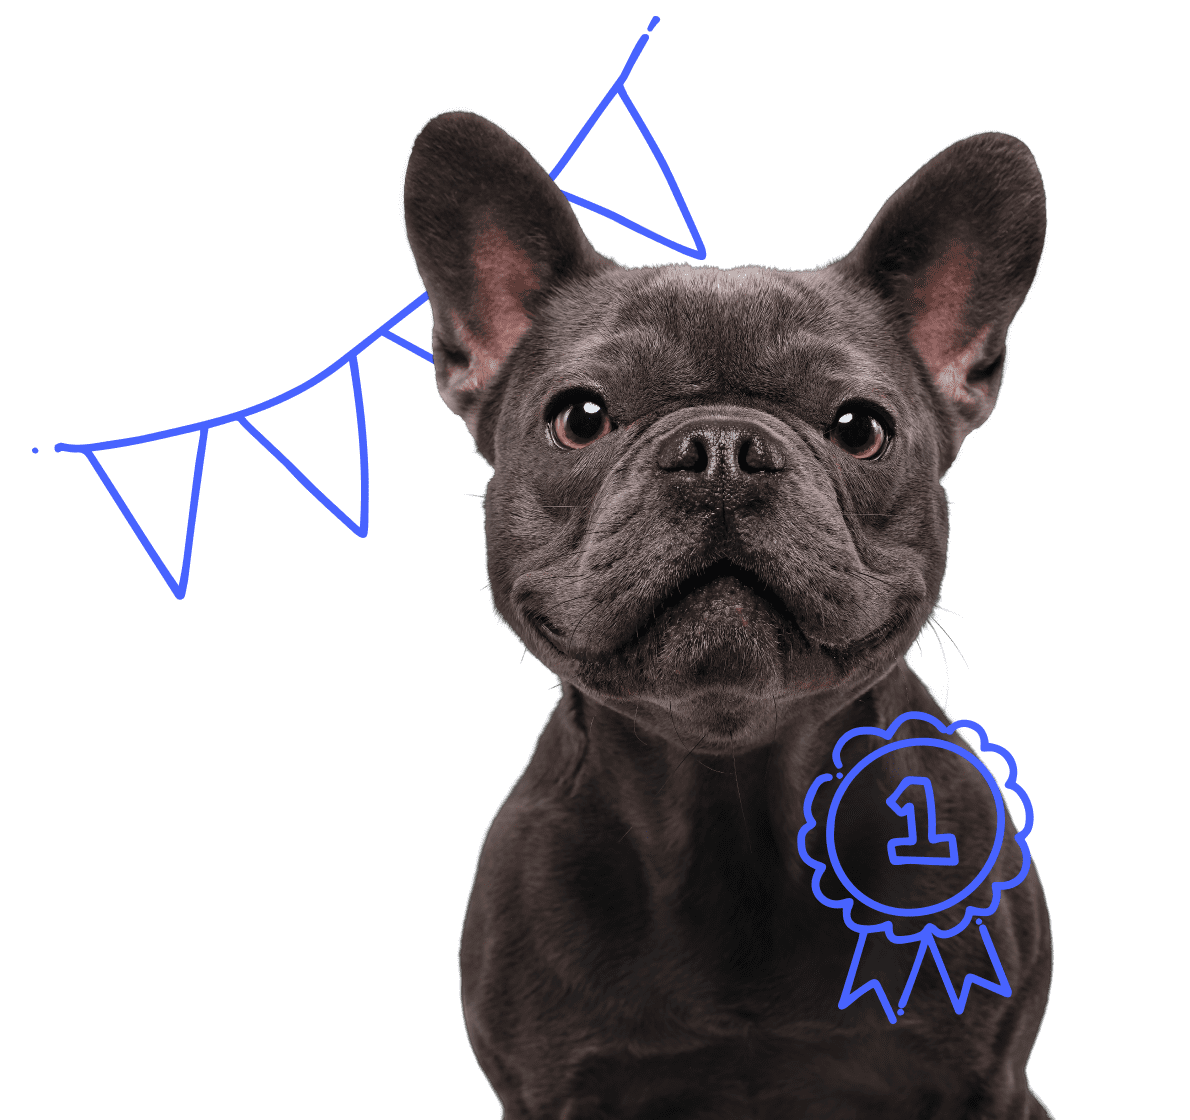 French bulldog with a number 1 badge